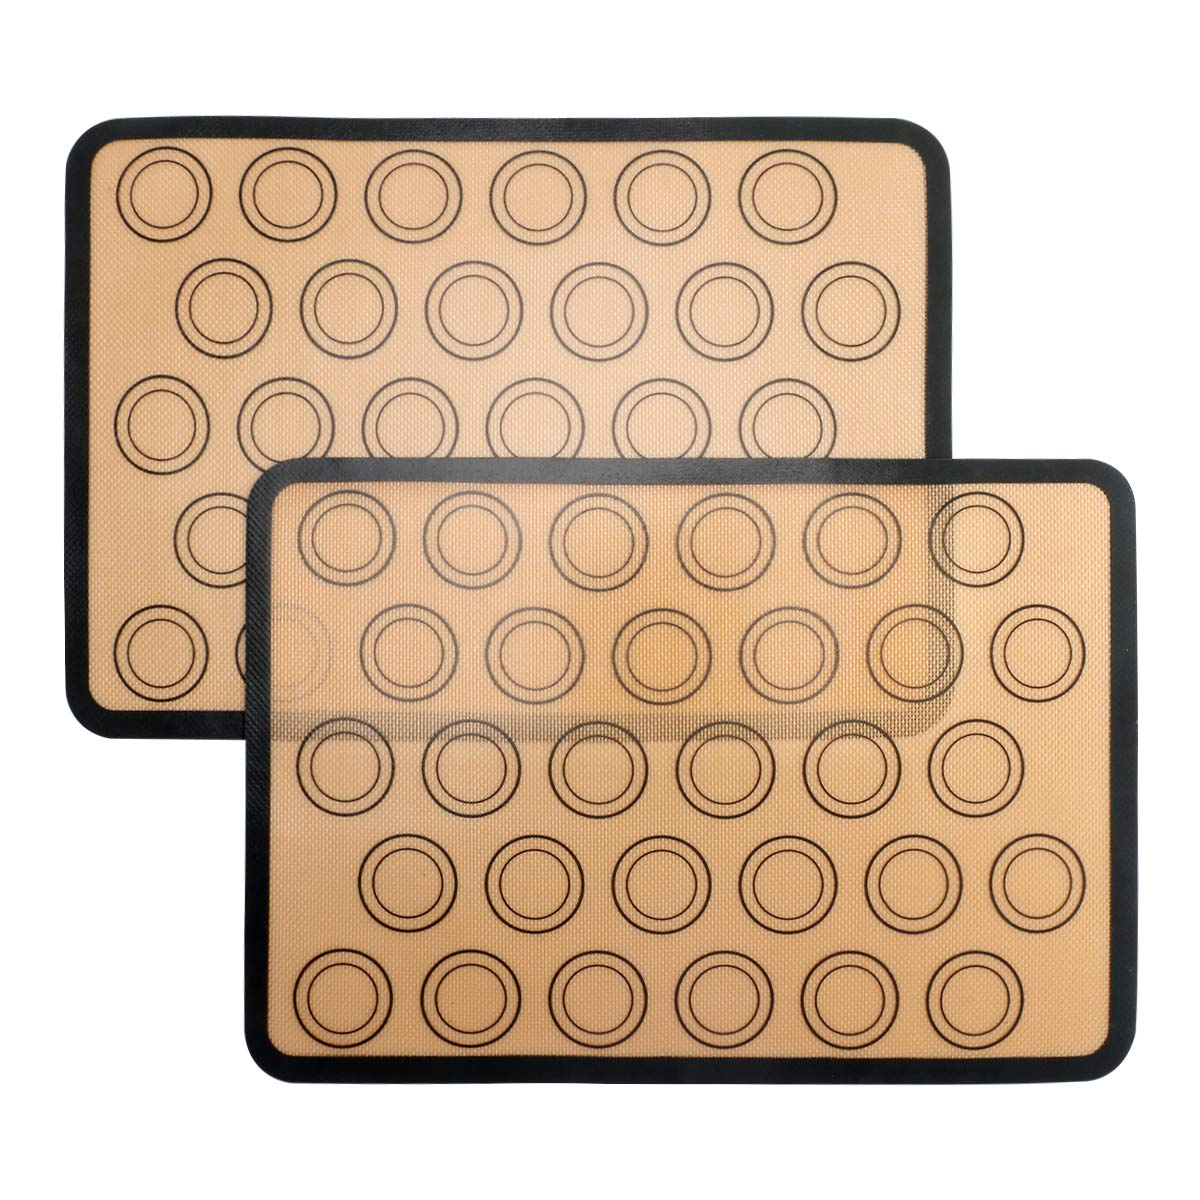 Silicone Baking Mat, 2-Pack Non-Stick Silicone Baking Sheet for Bake Pans & Rolling, Half Sheet (16-1/2'' x 11-5/8'') Silicon Liner for Macaron Pastry Cookie Bun Bread Making